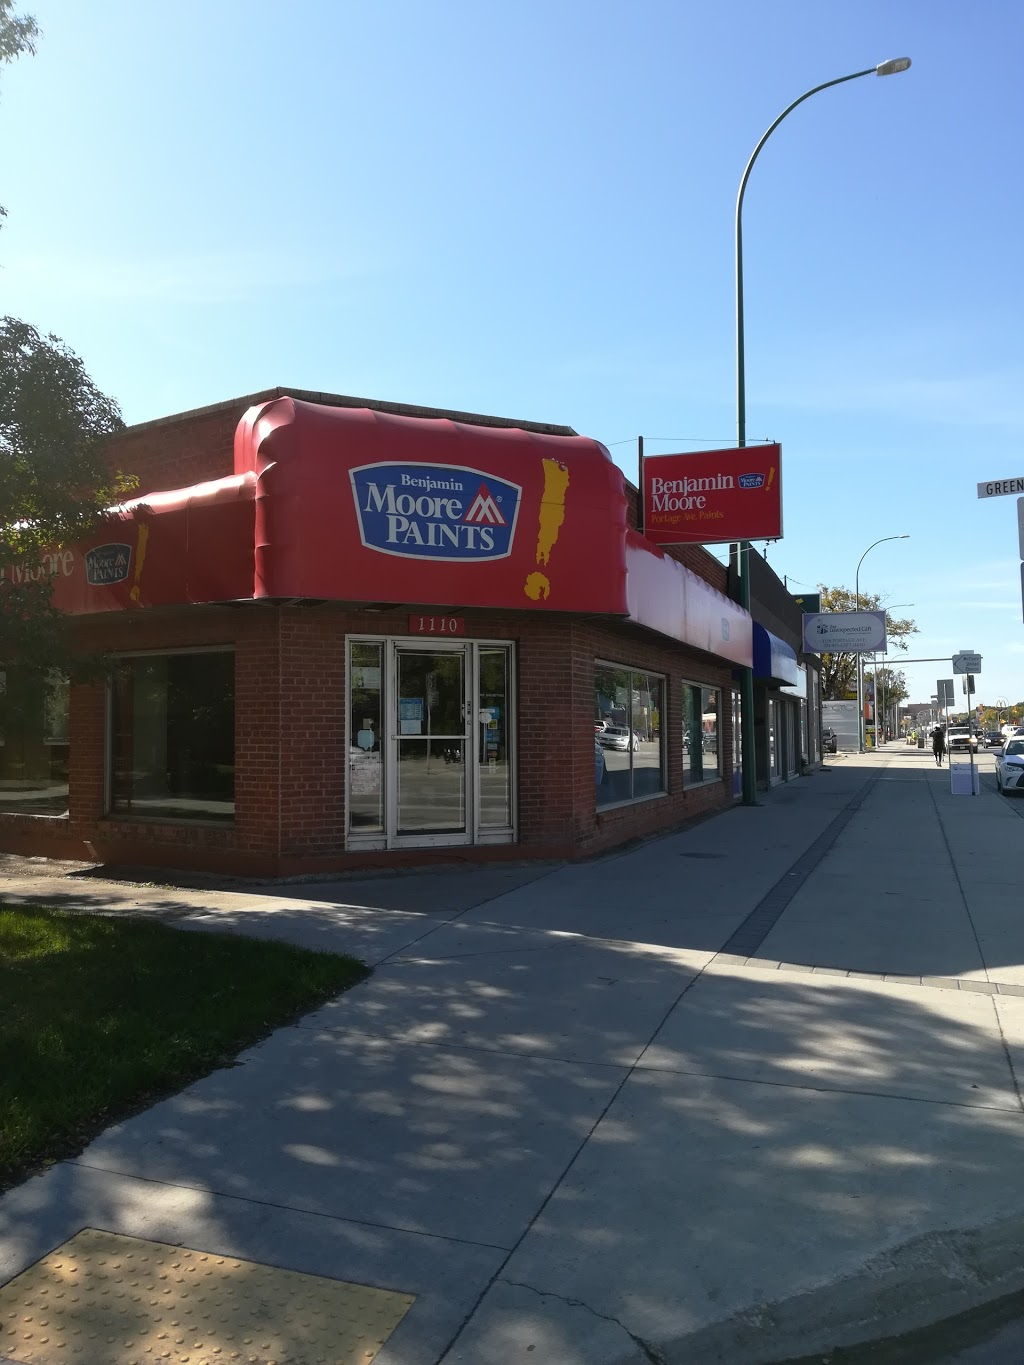 Portage Avenue Paints | hardware store | 1110 Portage Ave, Winnipeg, MB R3G 0S7, Canada | 2047880303 OR +1 204-788-0303